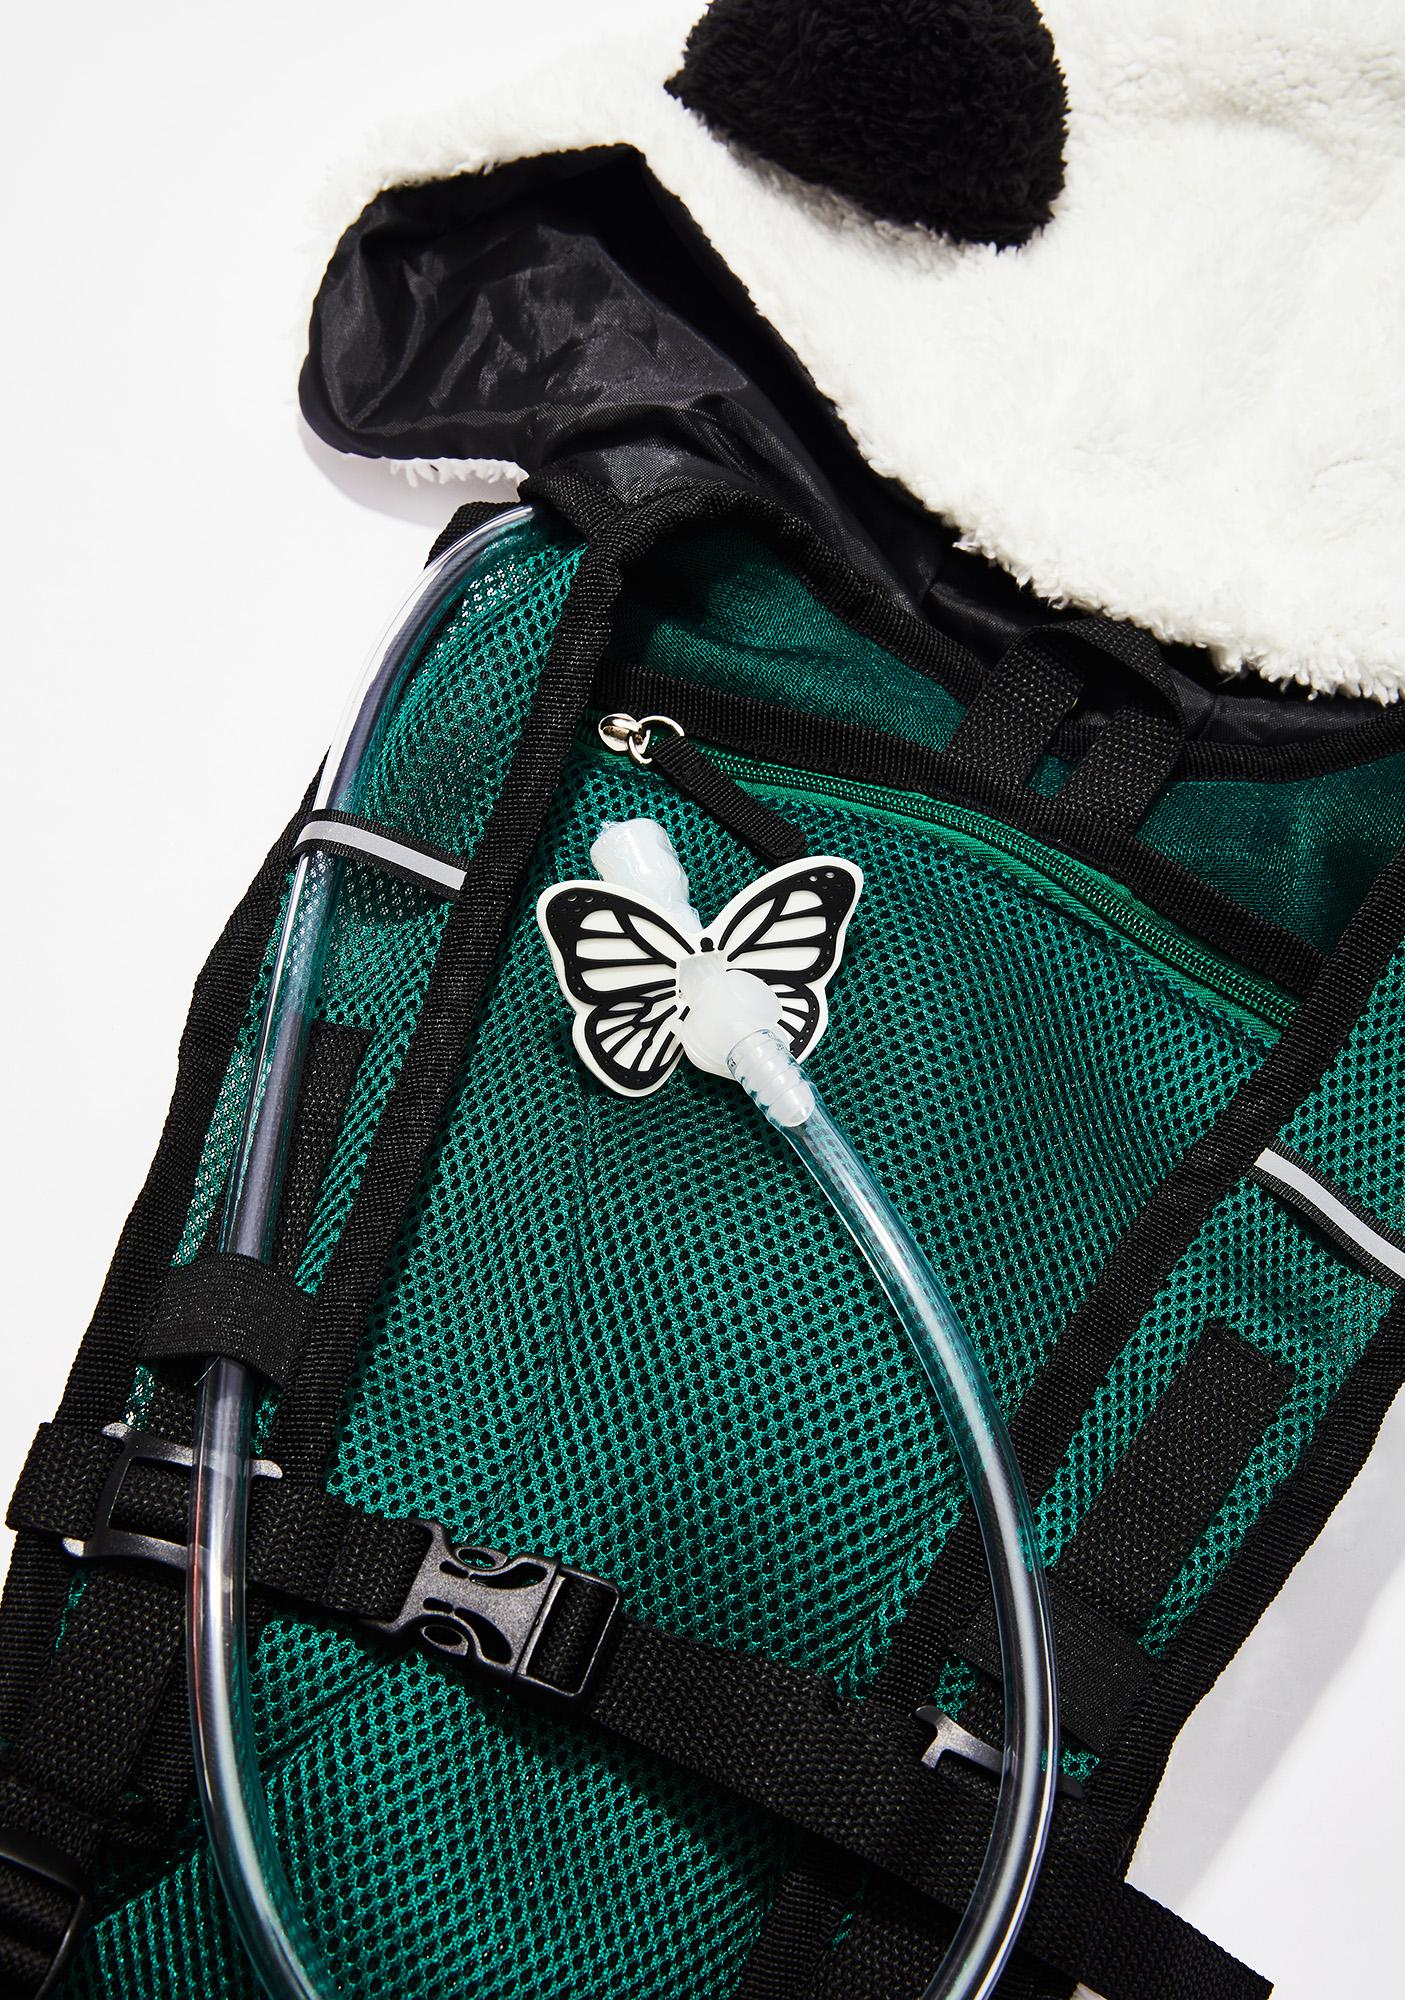 Dan-Pak Party Panda Hydration Backpack